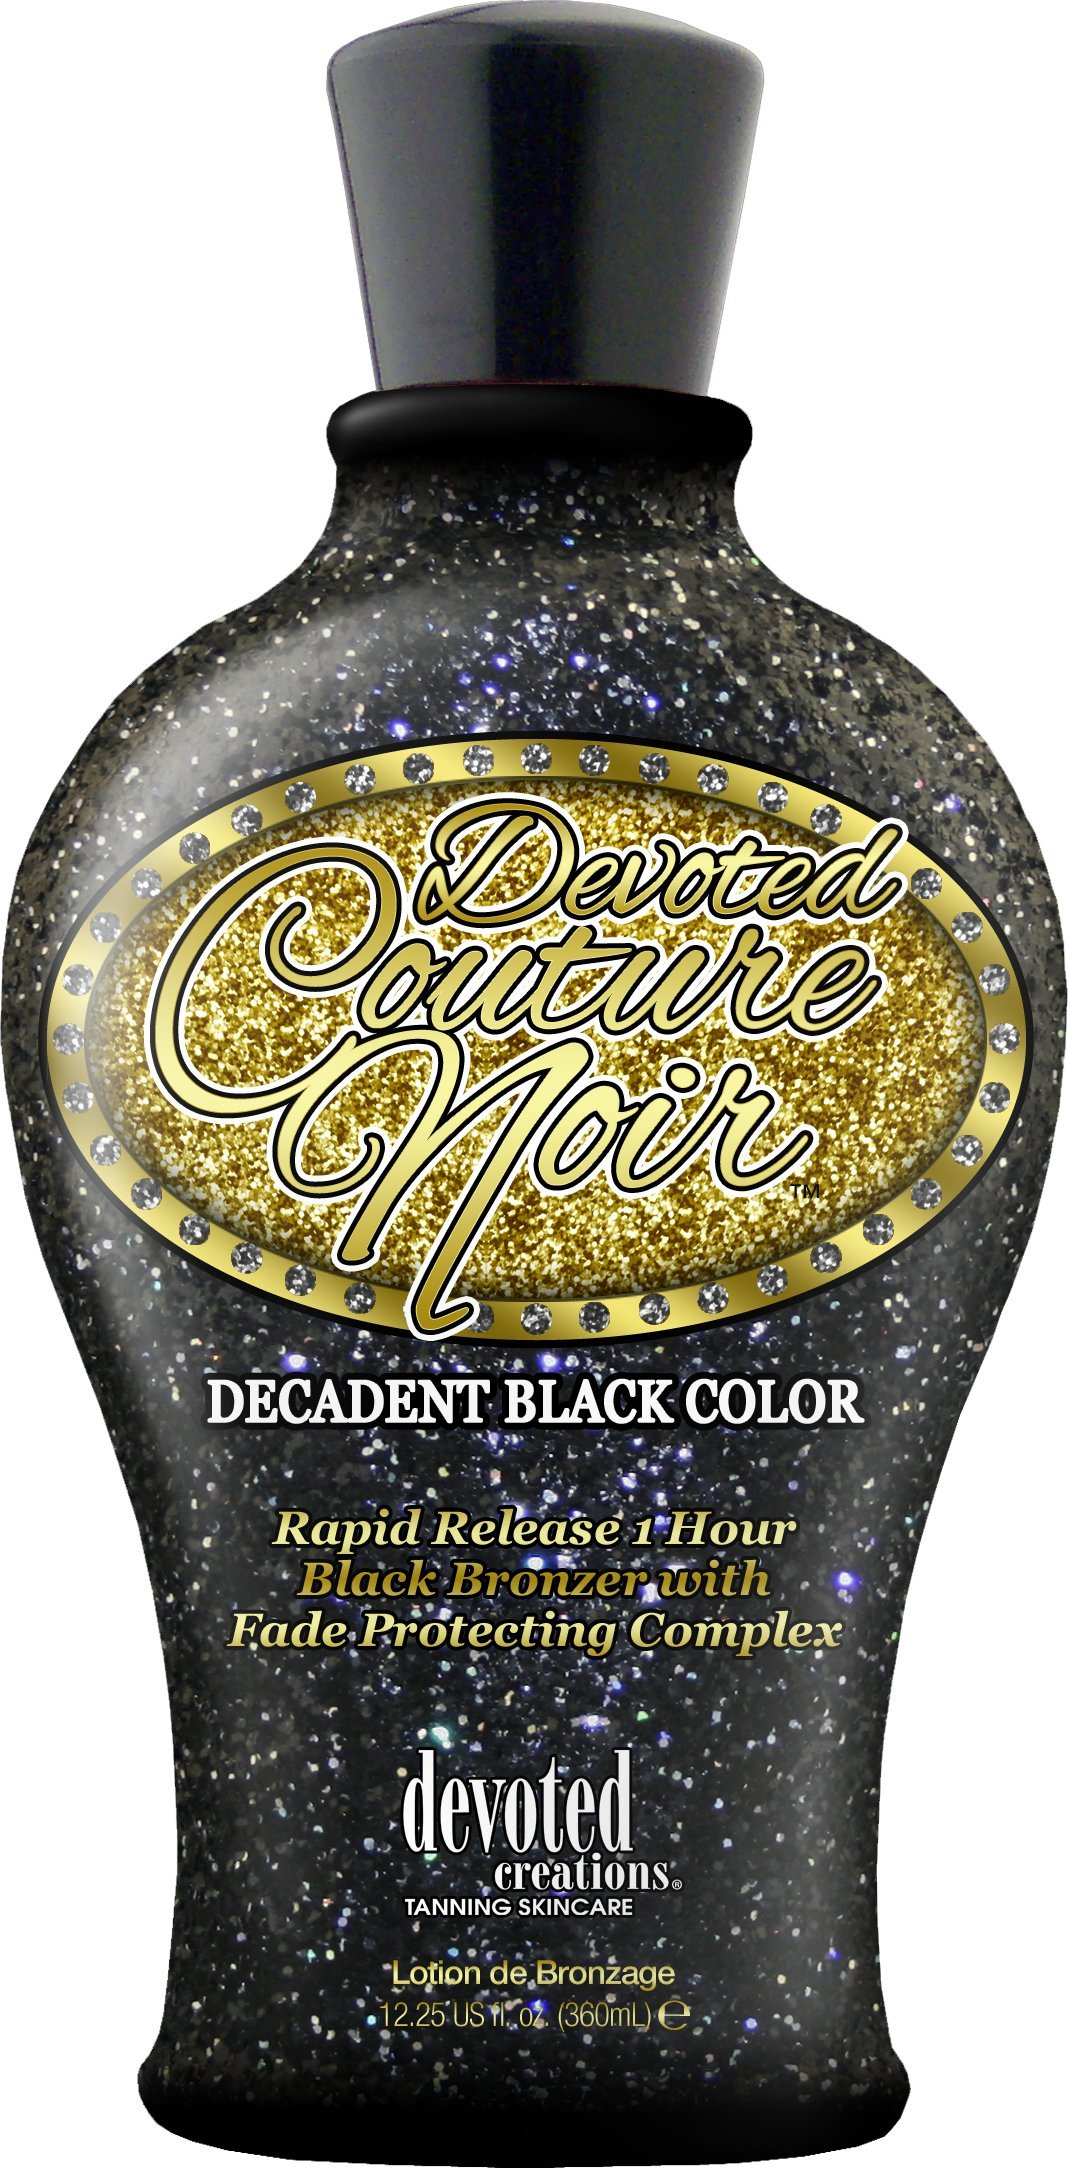 Devoted Creations Devoted Couture Noir Silicone Black Bronzer 12.25 Oz, 2012